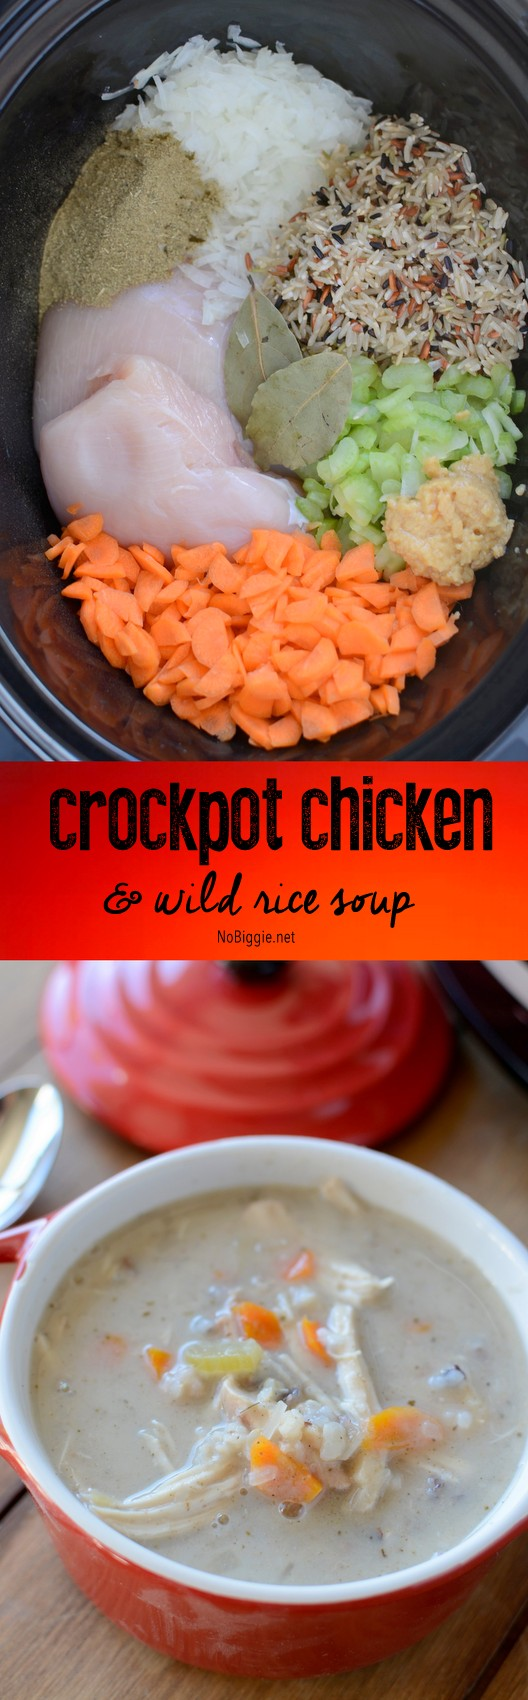 creamy crockpot chicken and wild rice soup | NoBiggie.net